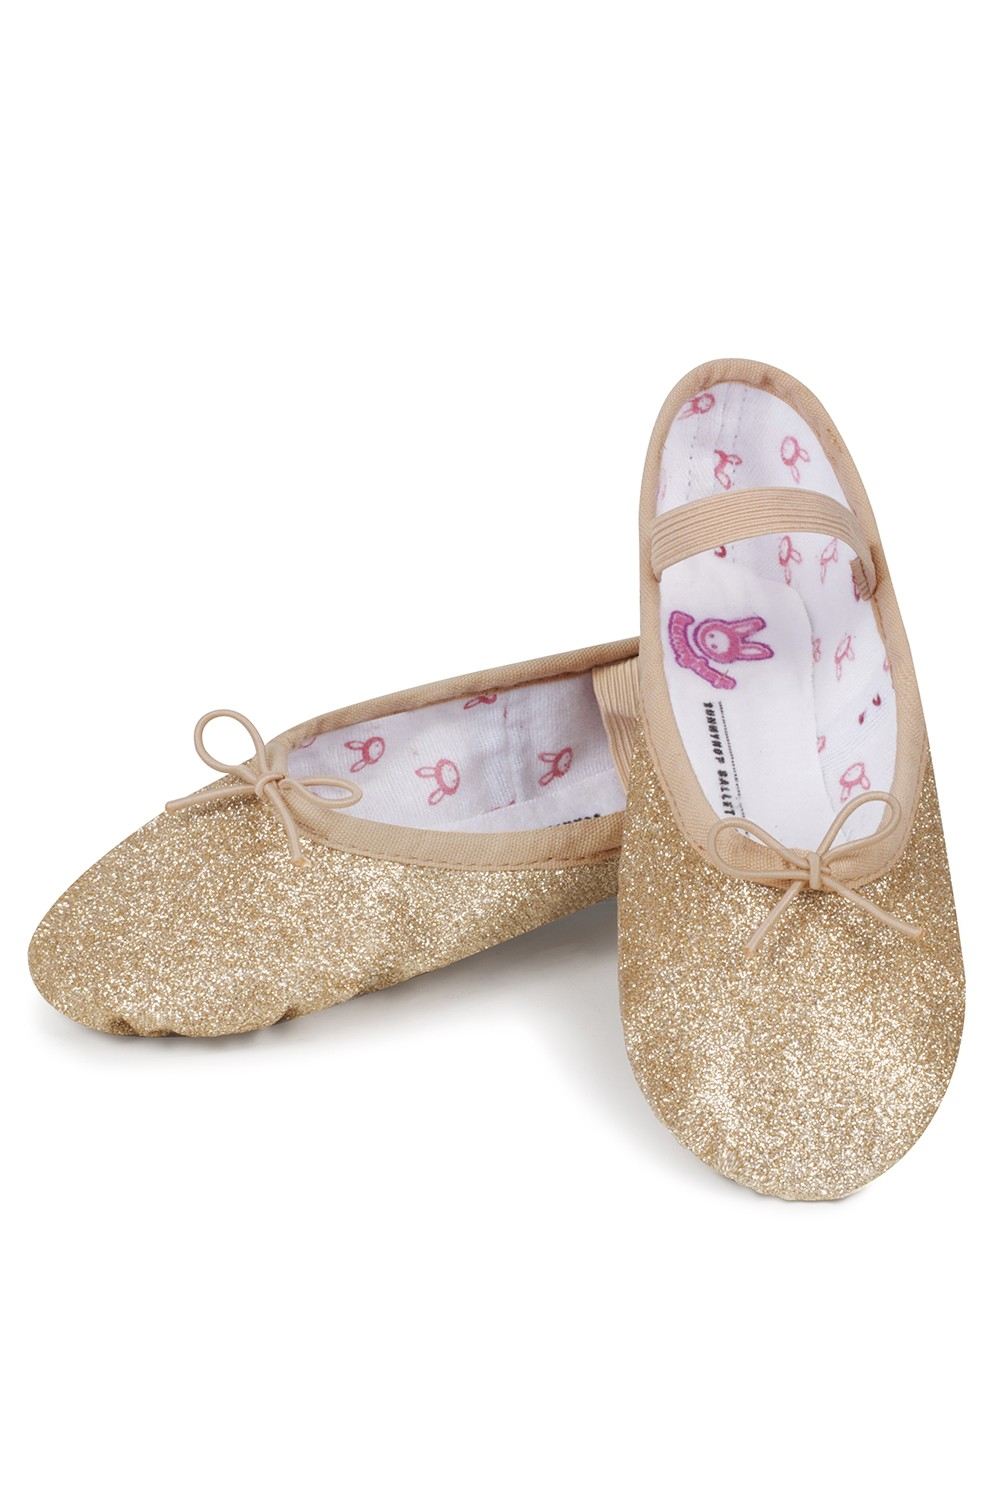 Glitterdust - Niñas Girl's Ballet Shoes